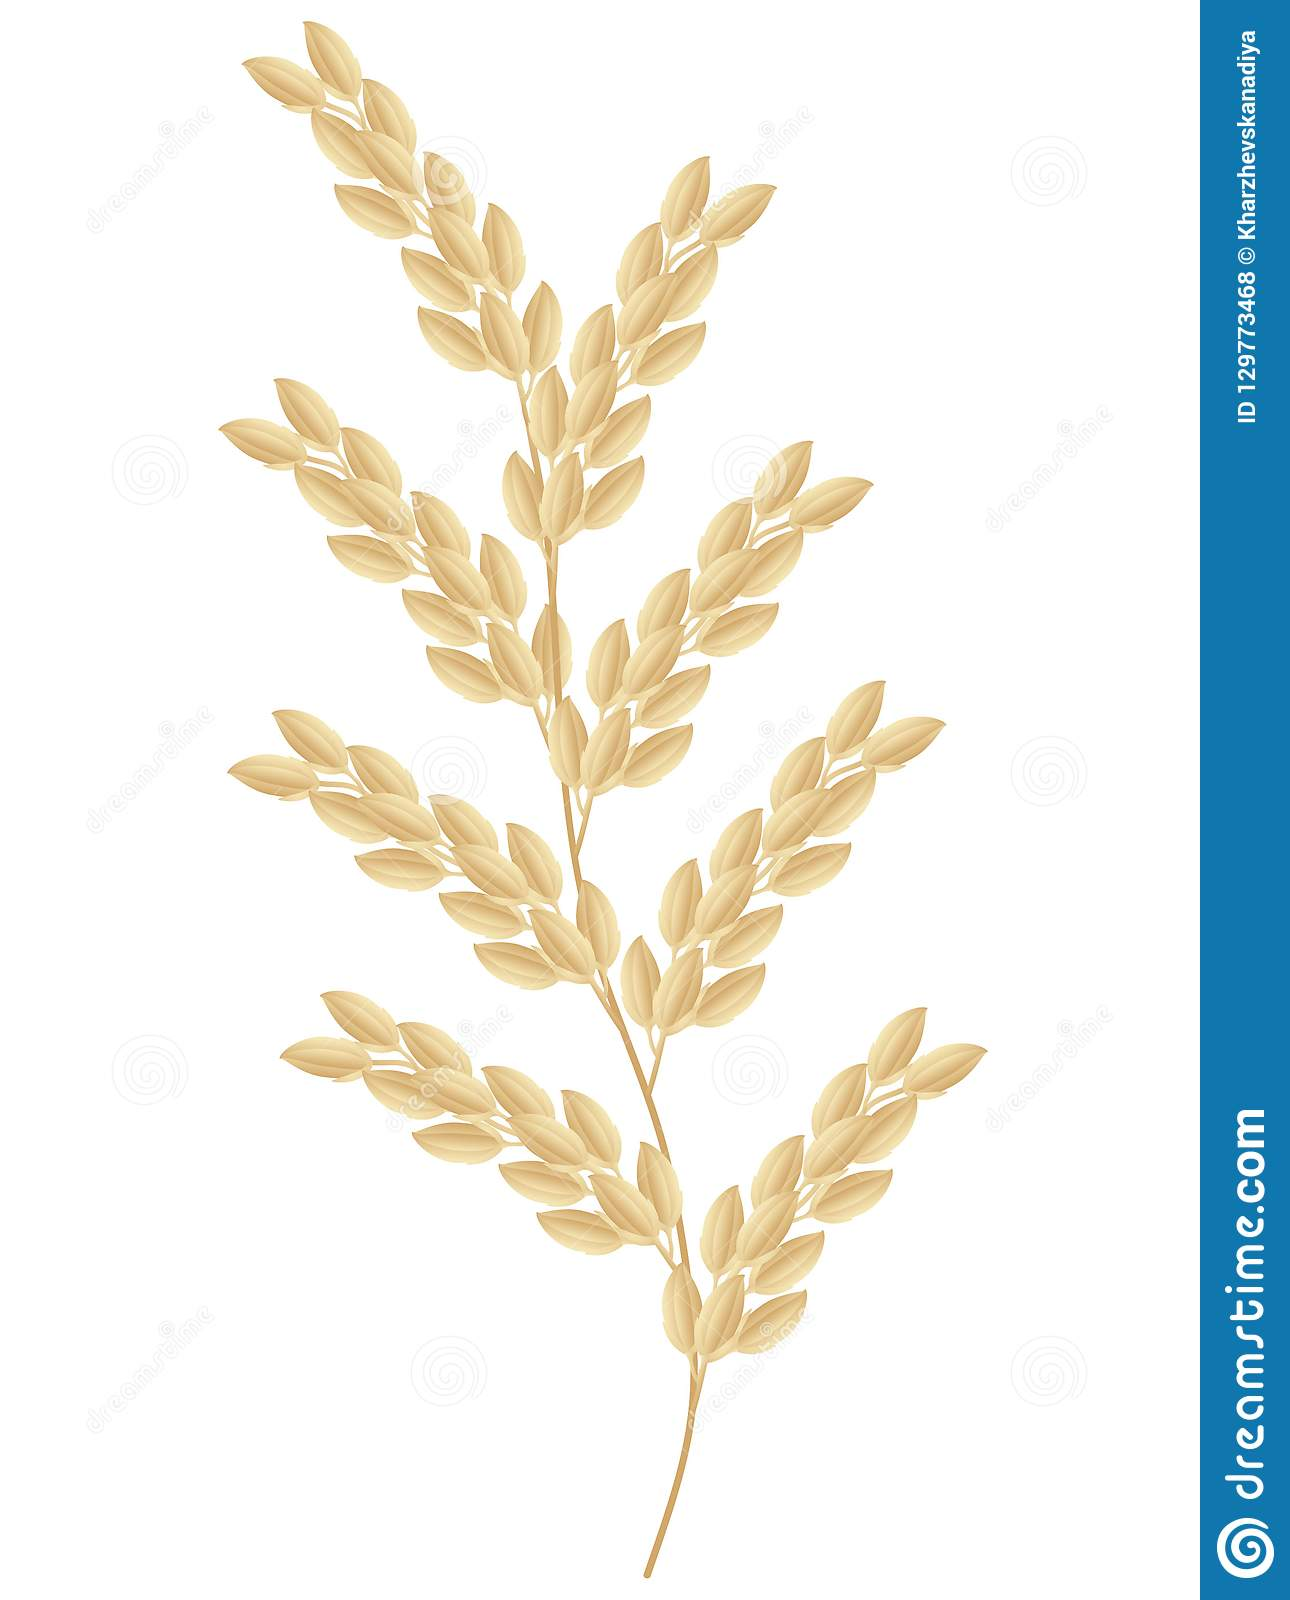 Spikelet of rice plant isolated on white background.